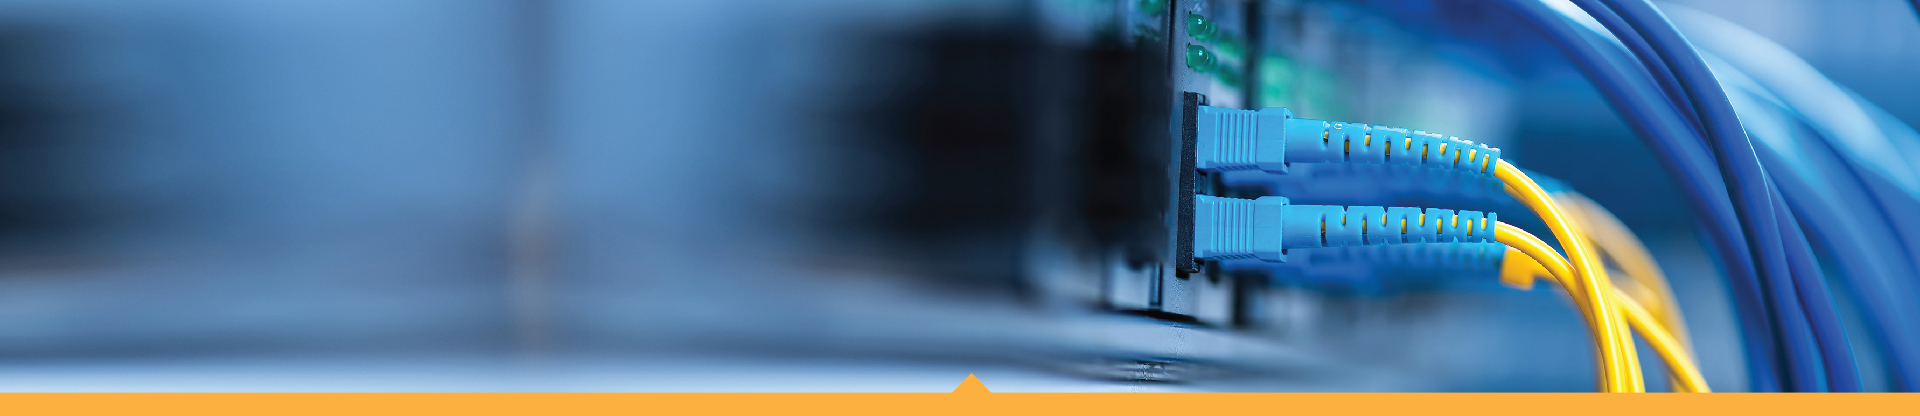 Datacenter Consolidation Services